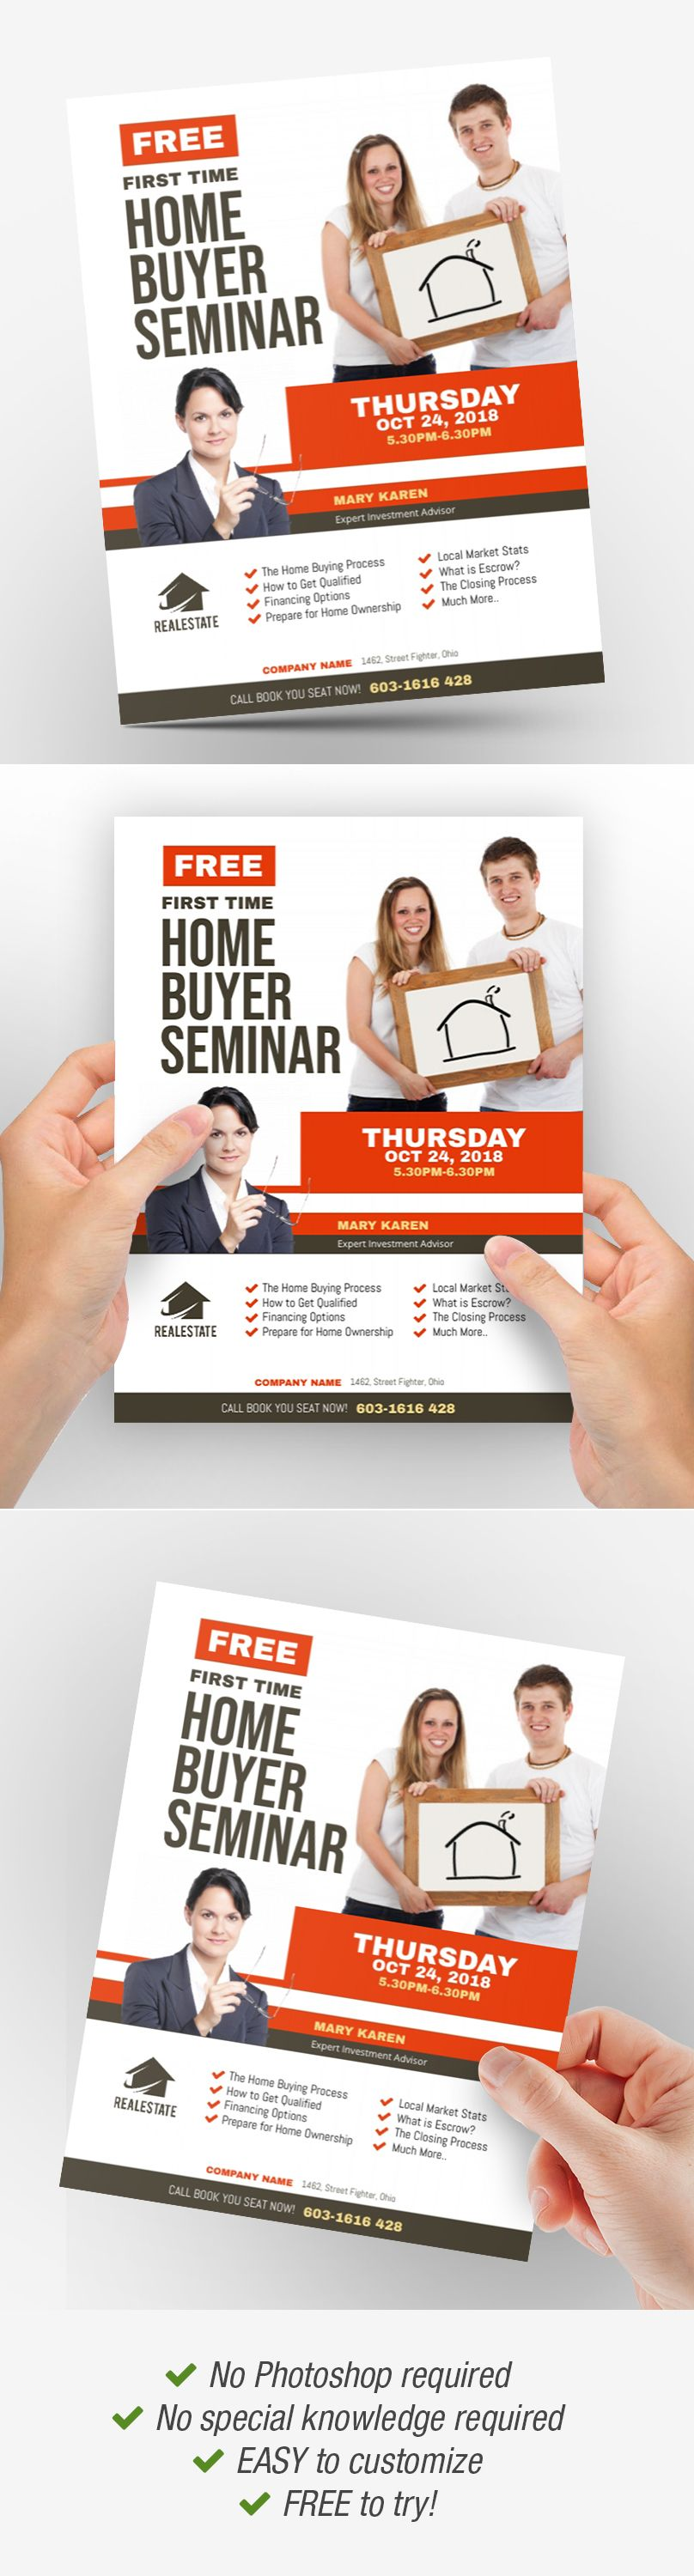 First Time Home Buyer Seminar Flyer First Time Home Buyers Real Estate Flyers Seminar Home buyer seminar flyer template